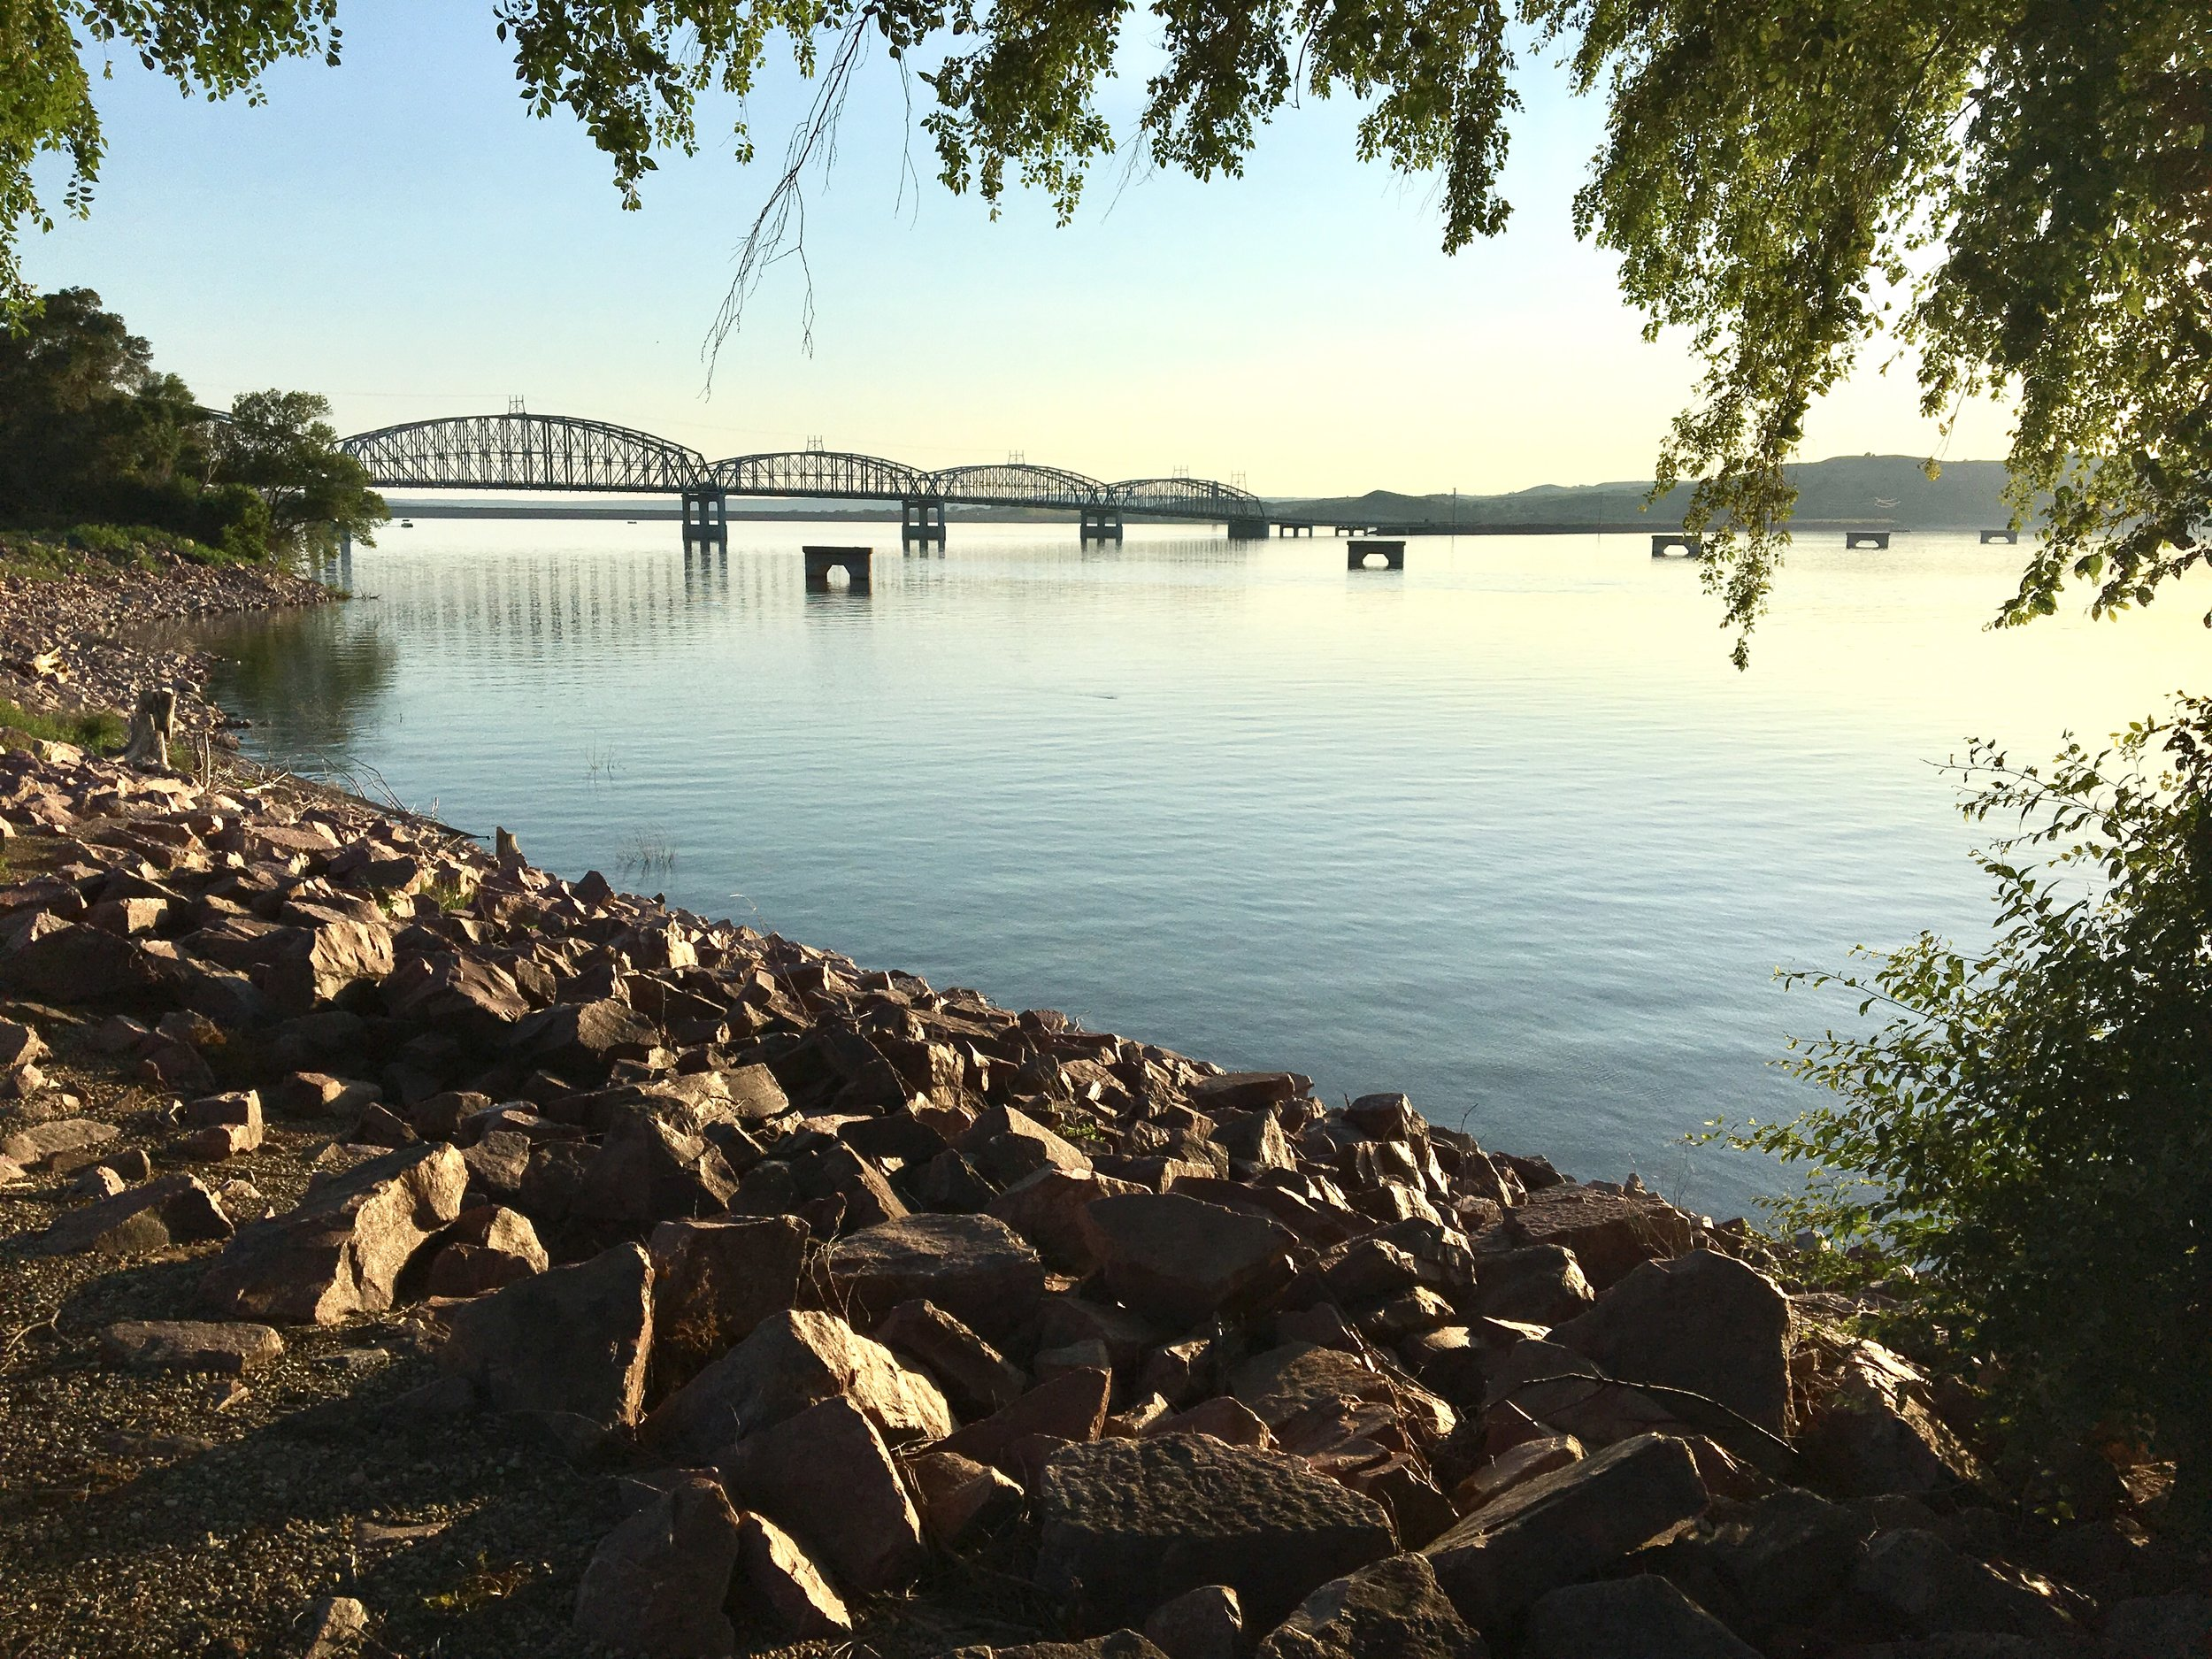 - A view of the bridge over the Missouri River as seen from our walk in Chamberlain in the evening.